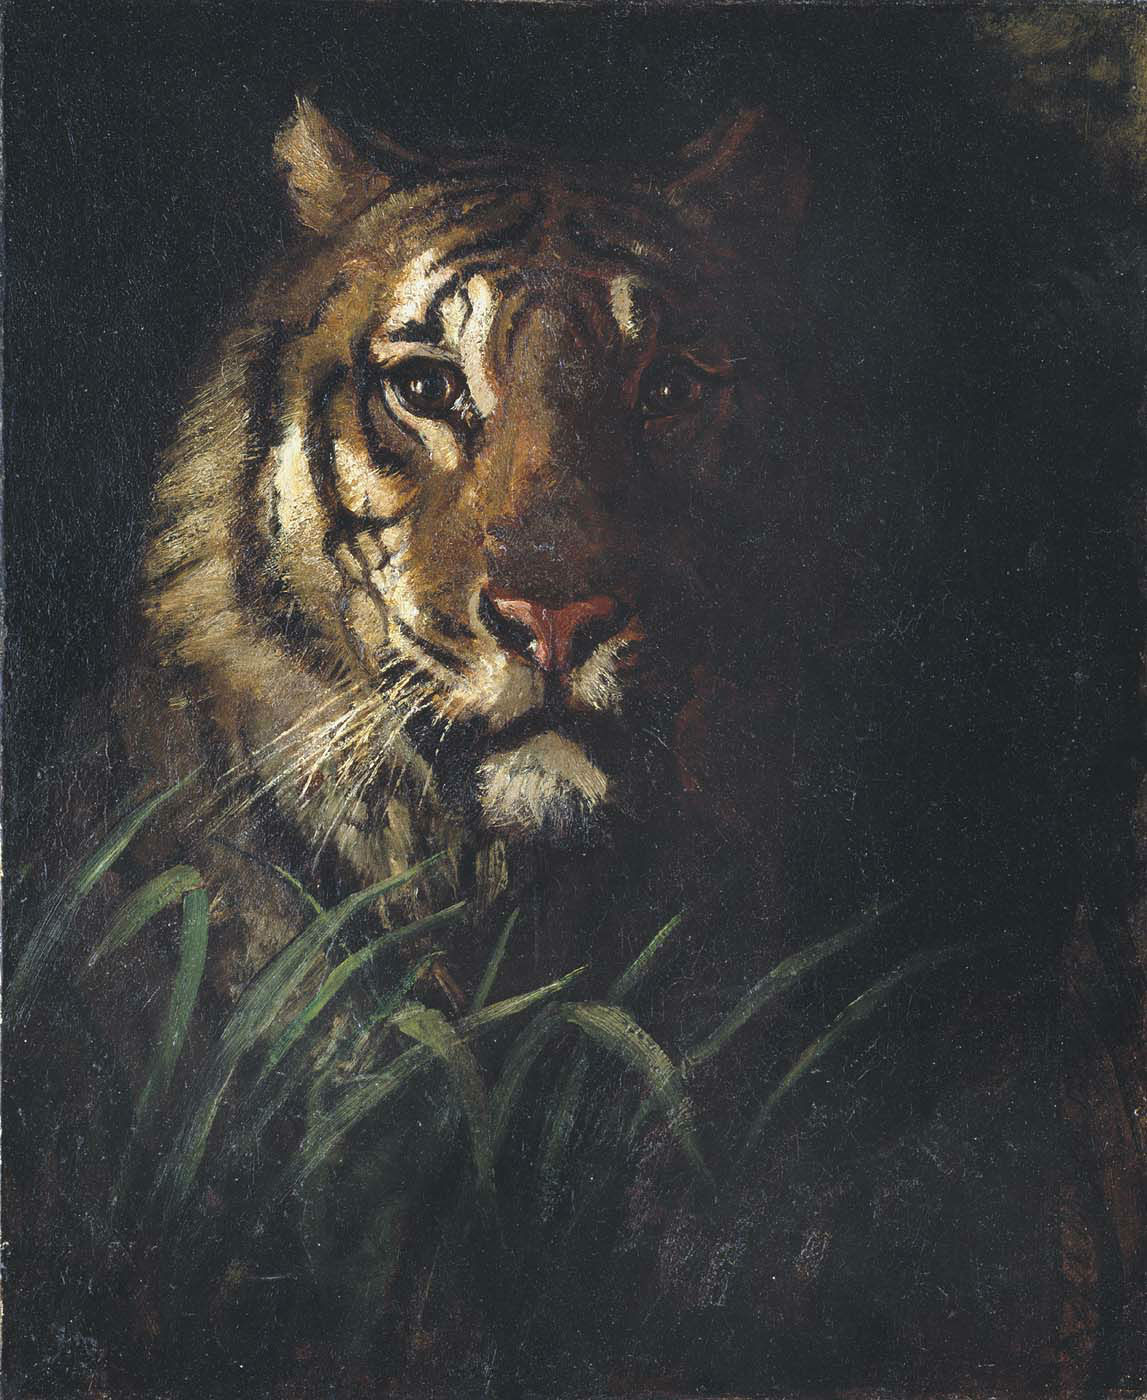 Abbott Handerson Thayer - Tiger's Head